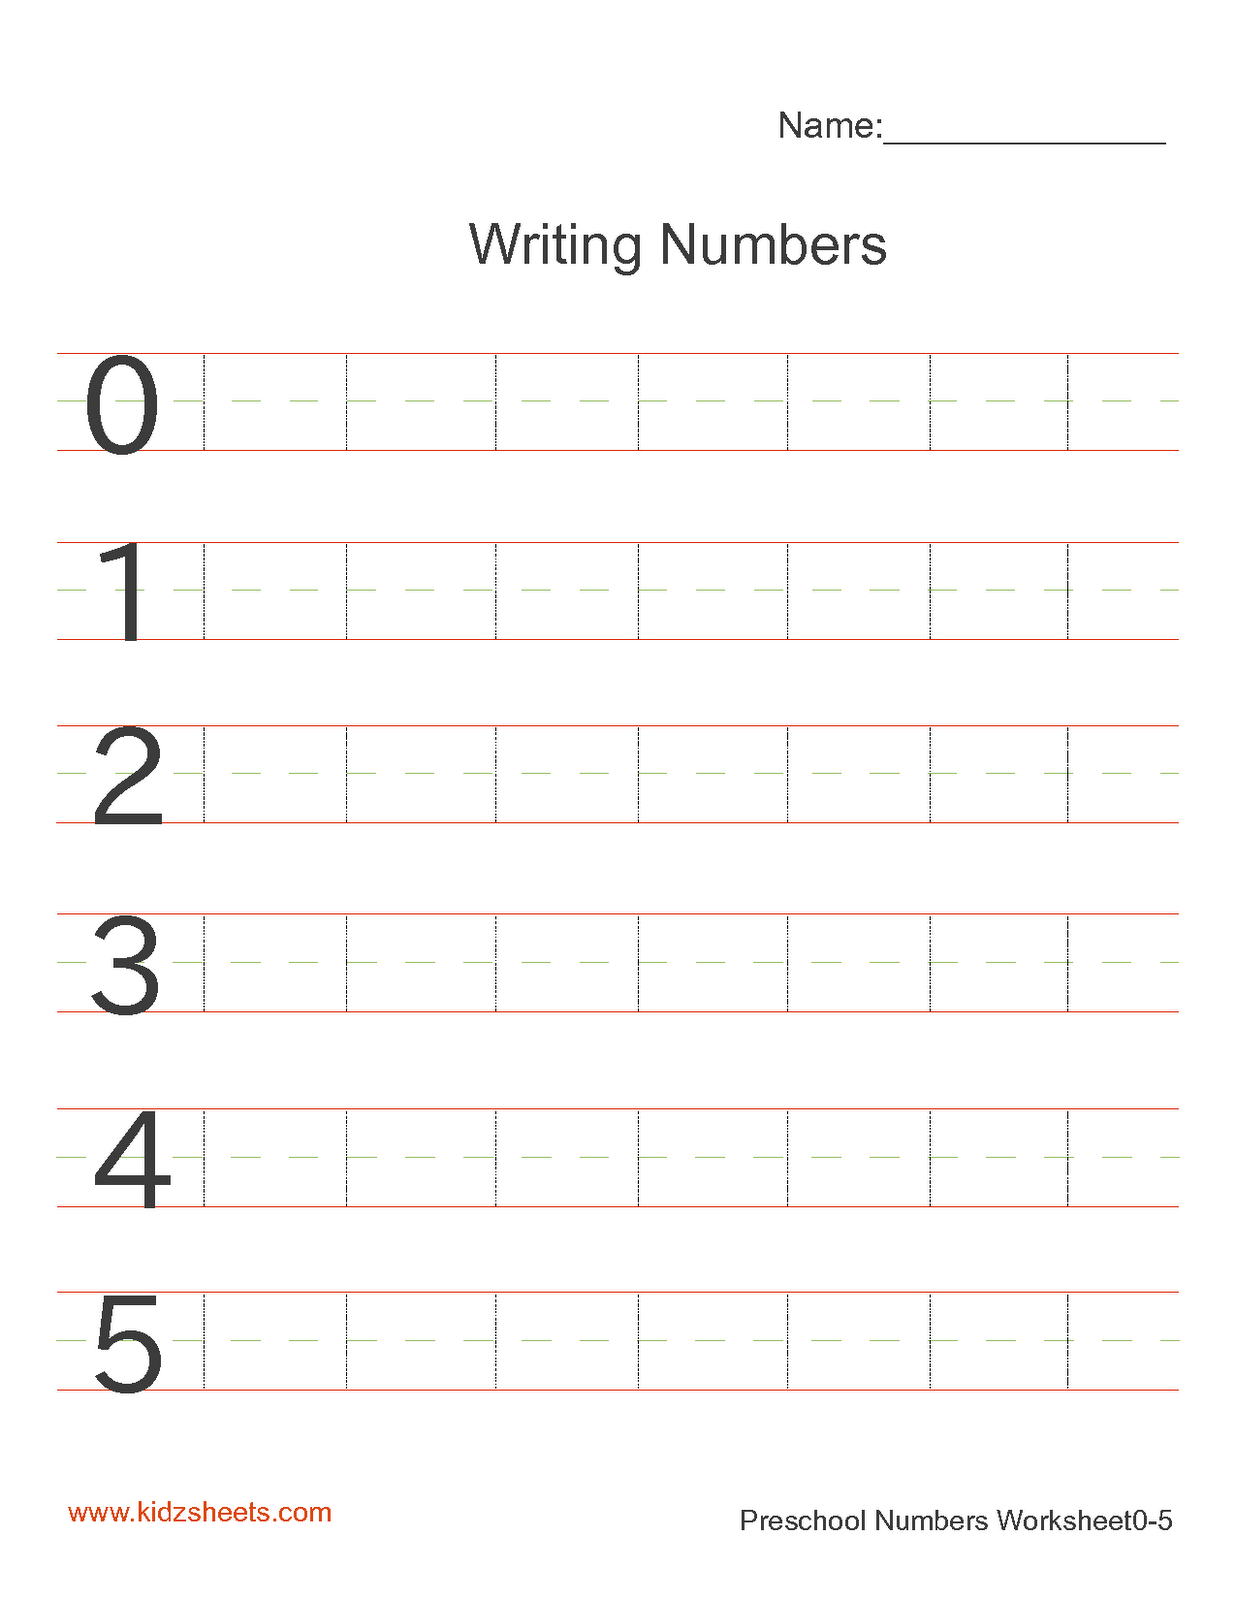 Kidz Worksheets Preschool Writing Numbers Worksheet1